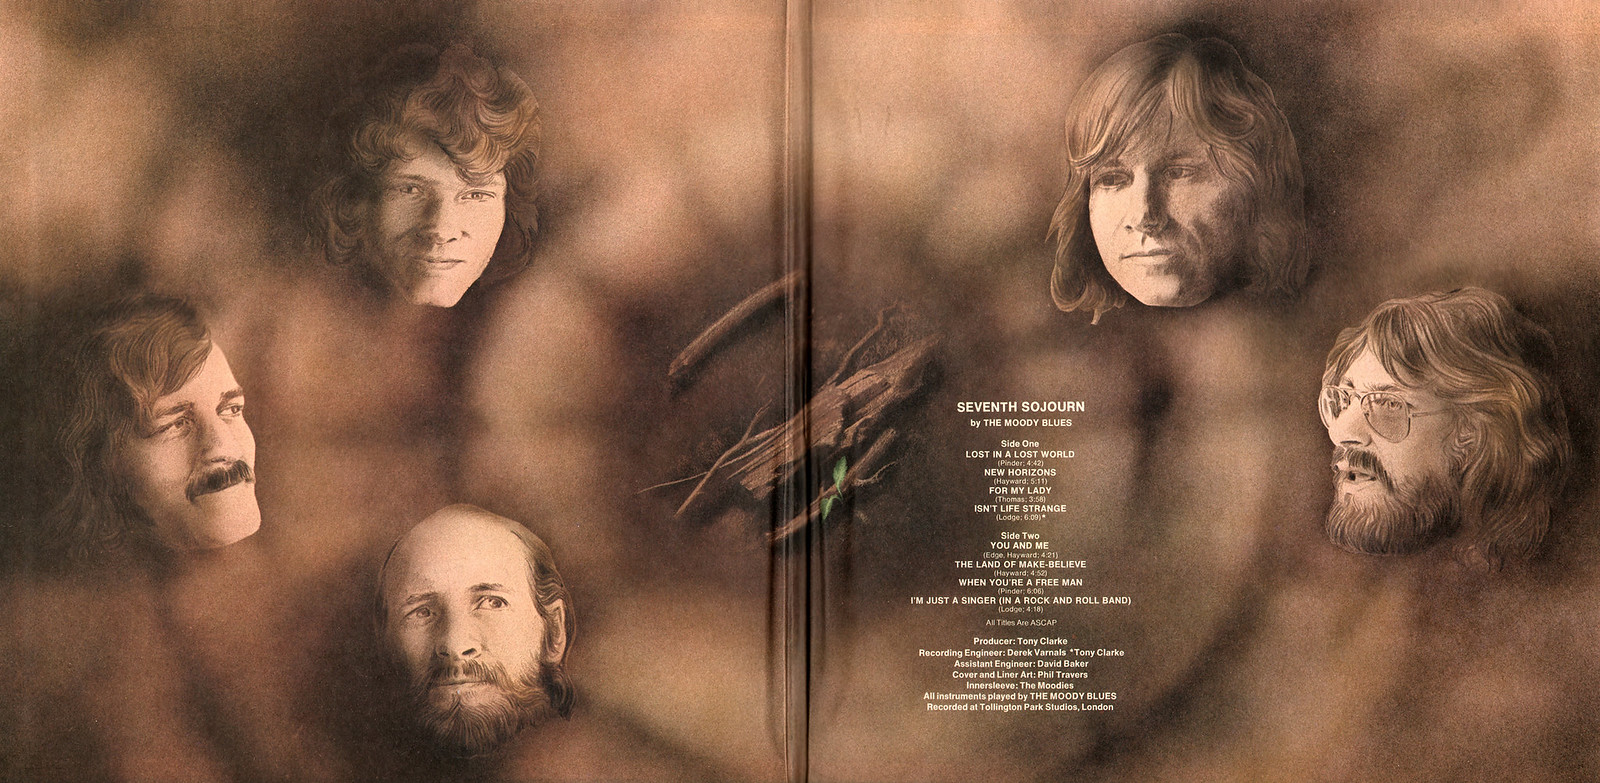 The Moody Blues - Seventh Sojourn